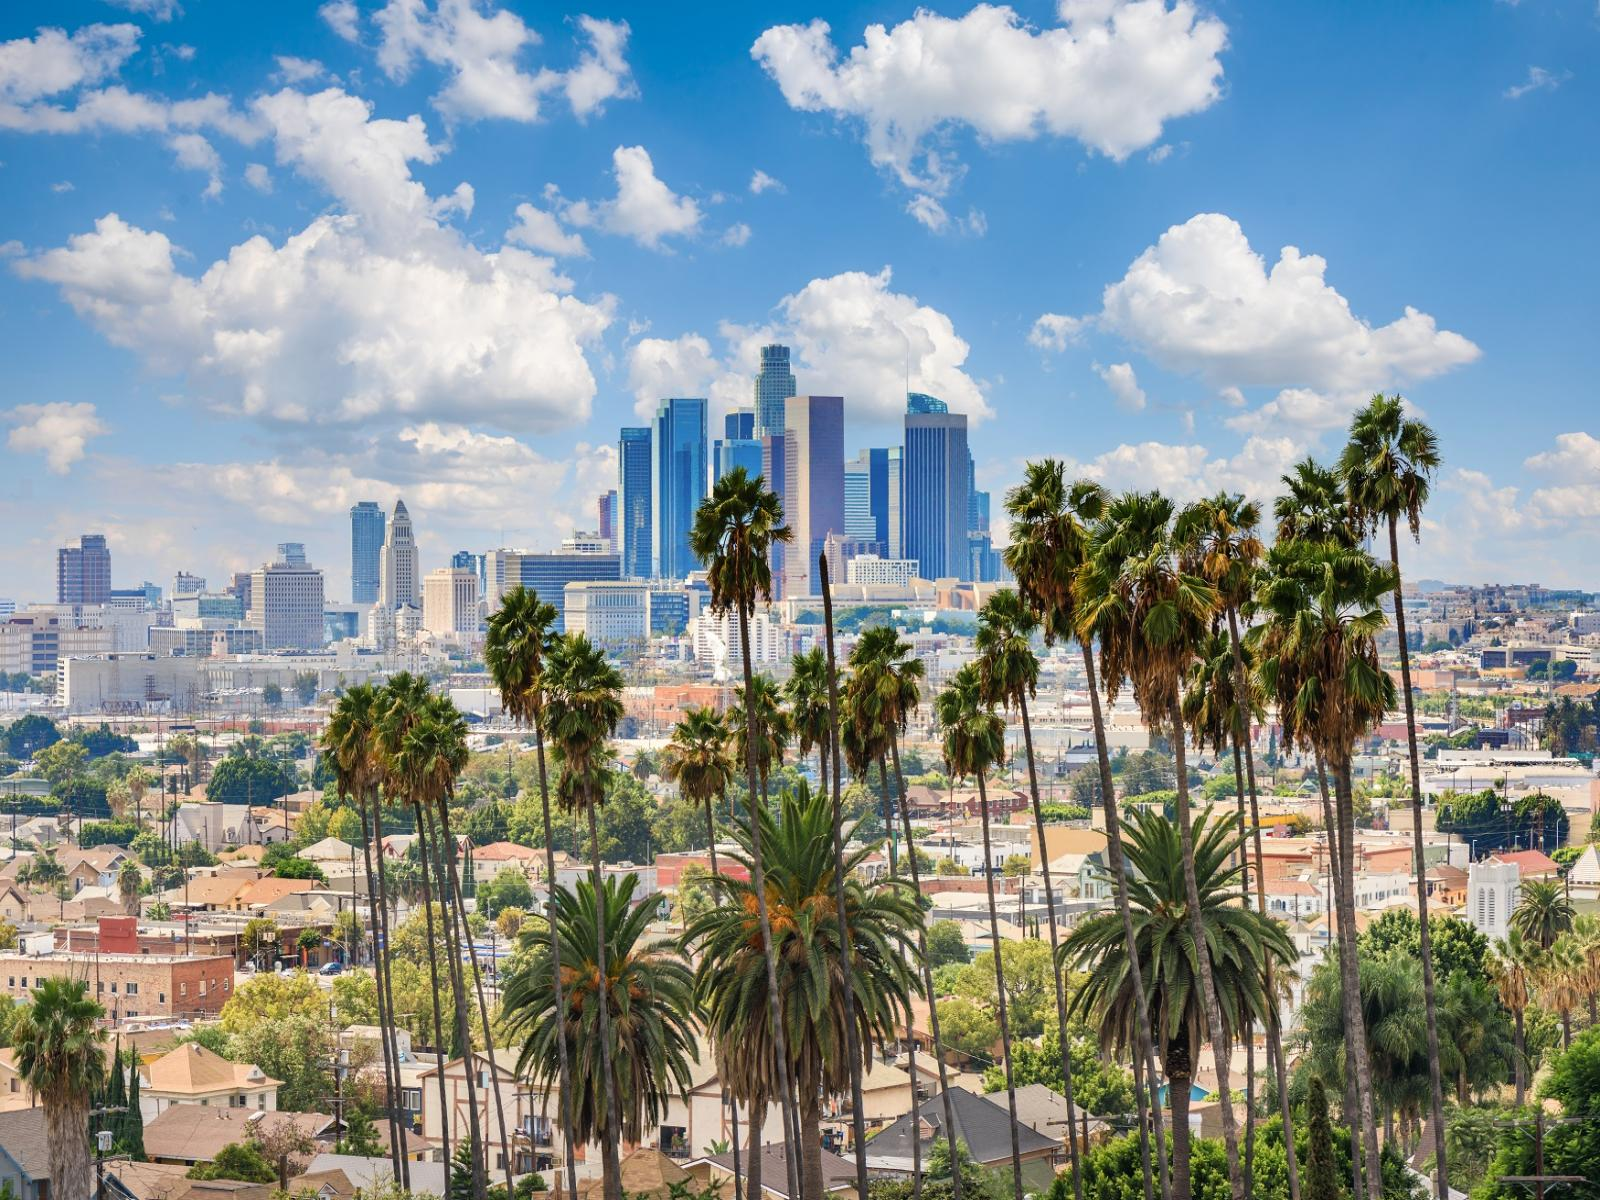 Photo of skyscrapers and palm trees in LA Los Angeles